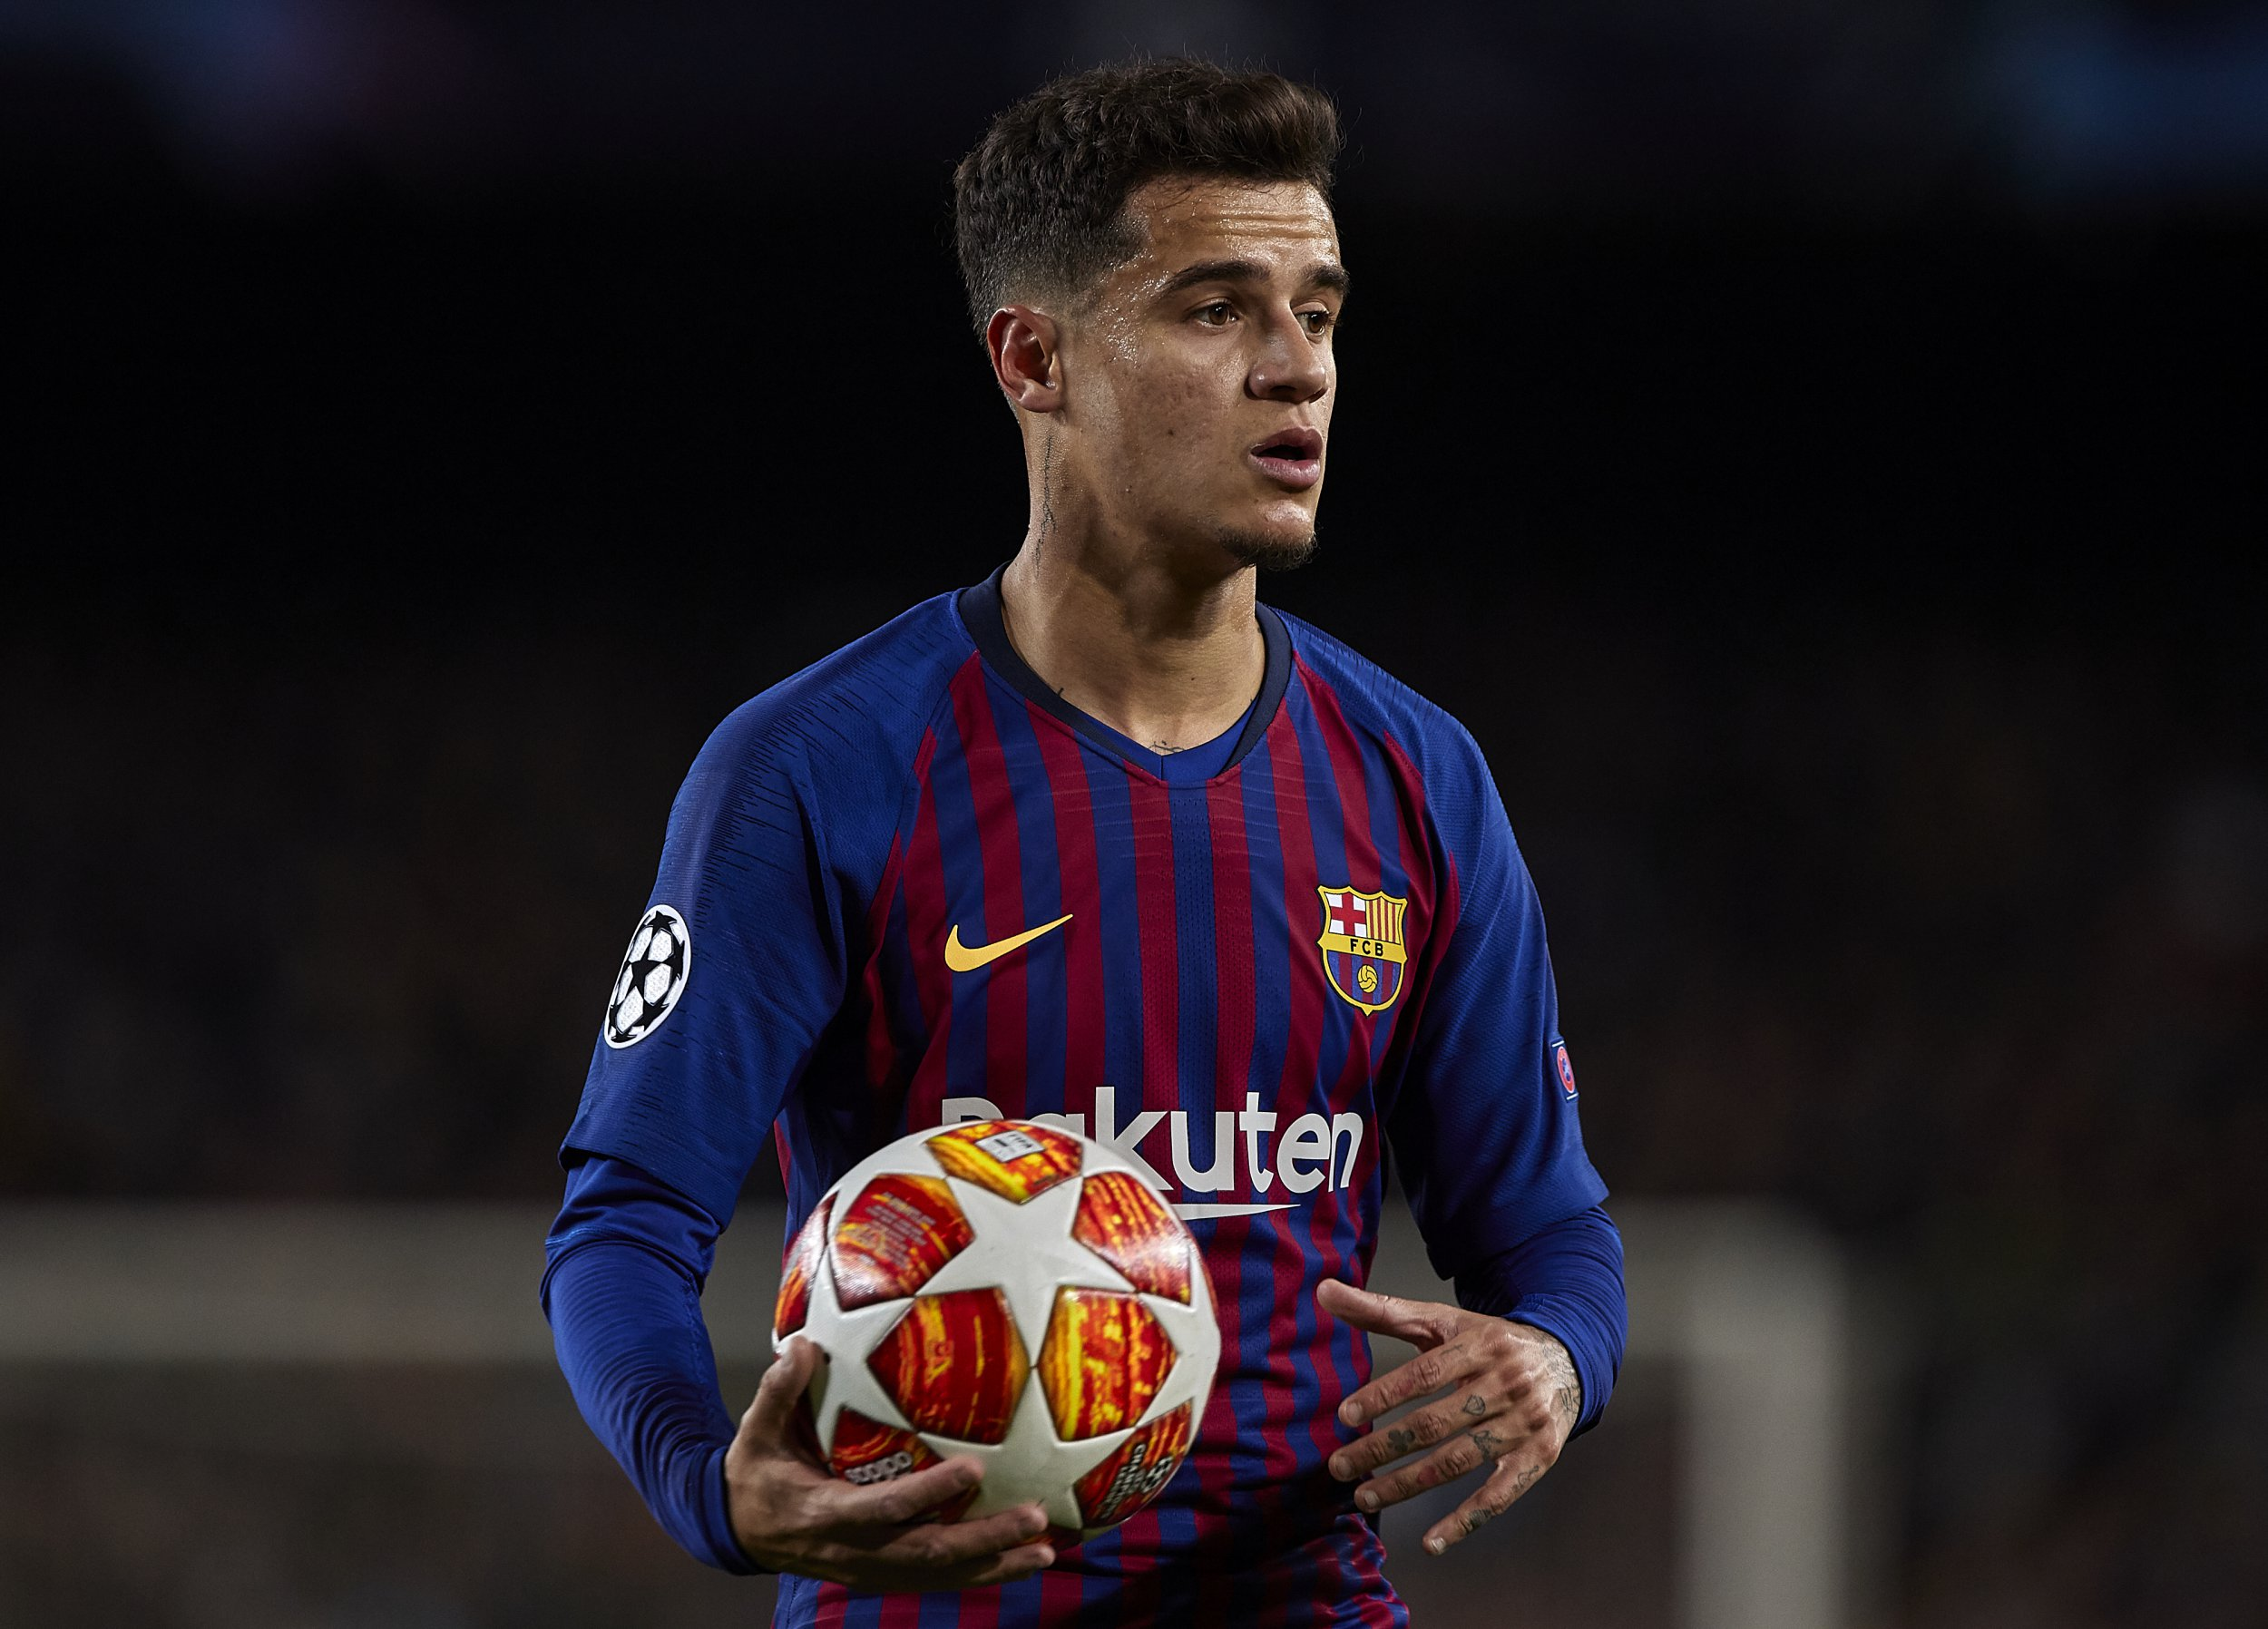 Philippe Coutinho put off by Manchester United move as Barcelona consider transfer